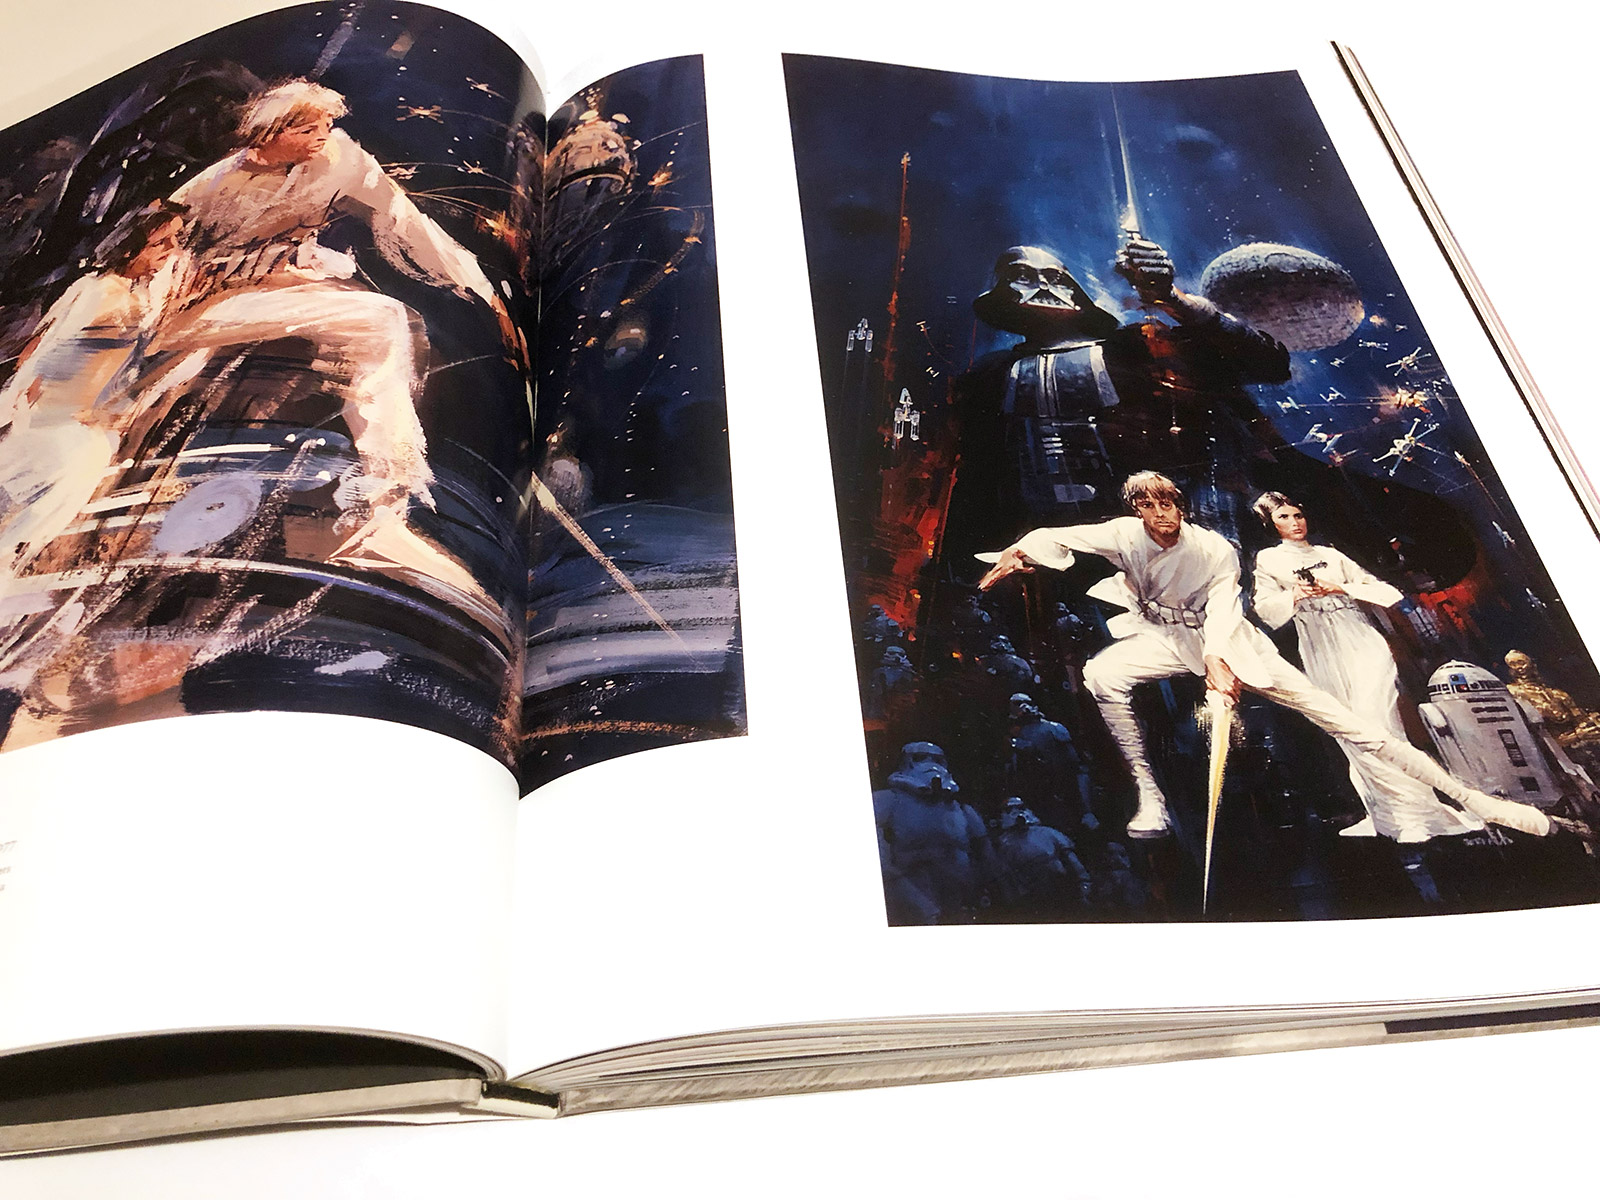 Star Wars Art: Posters Book Review